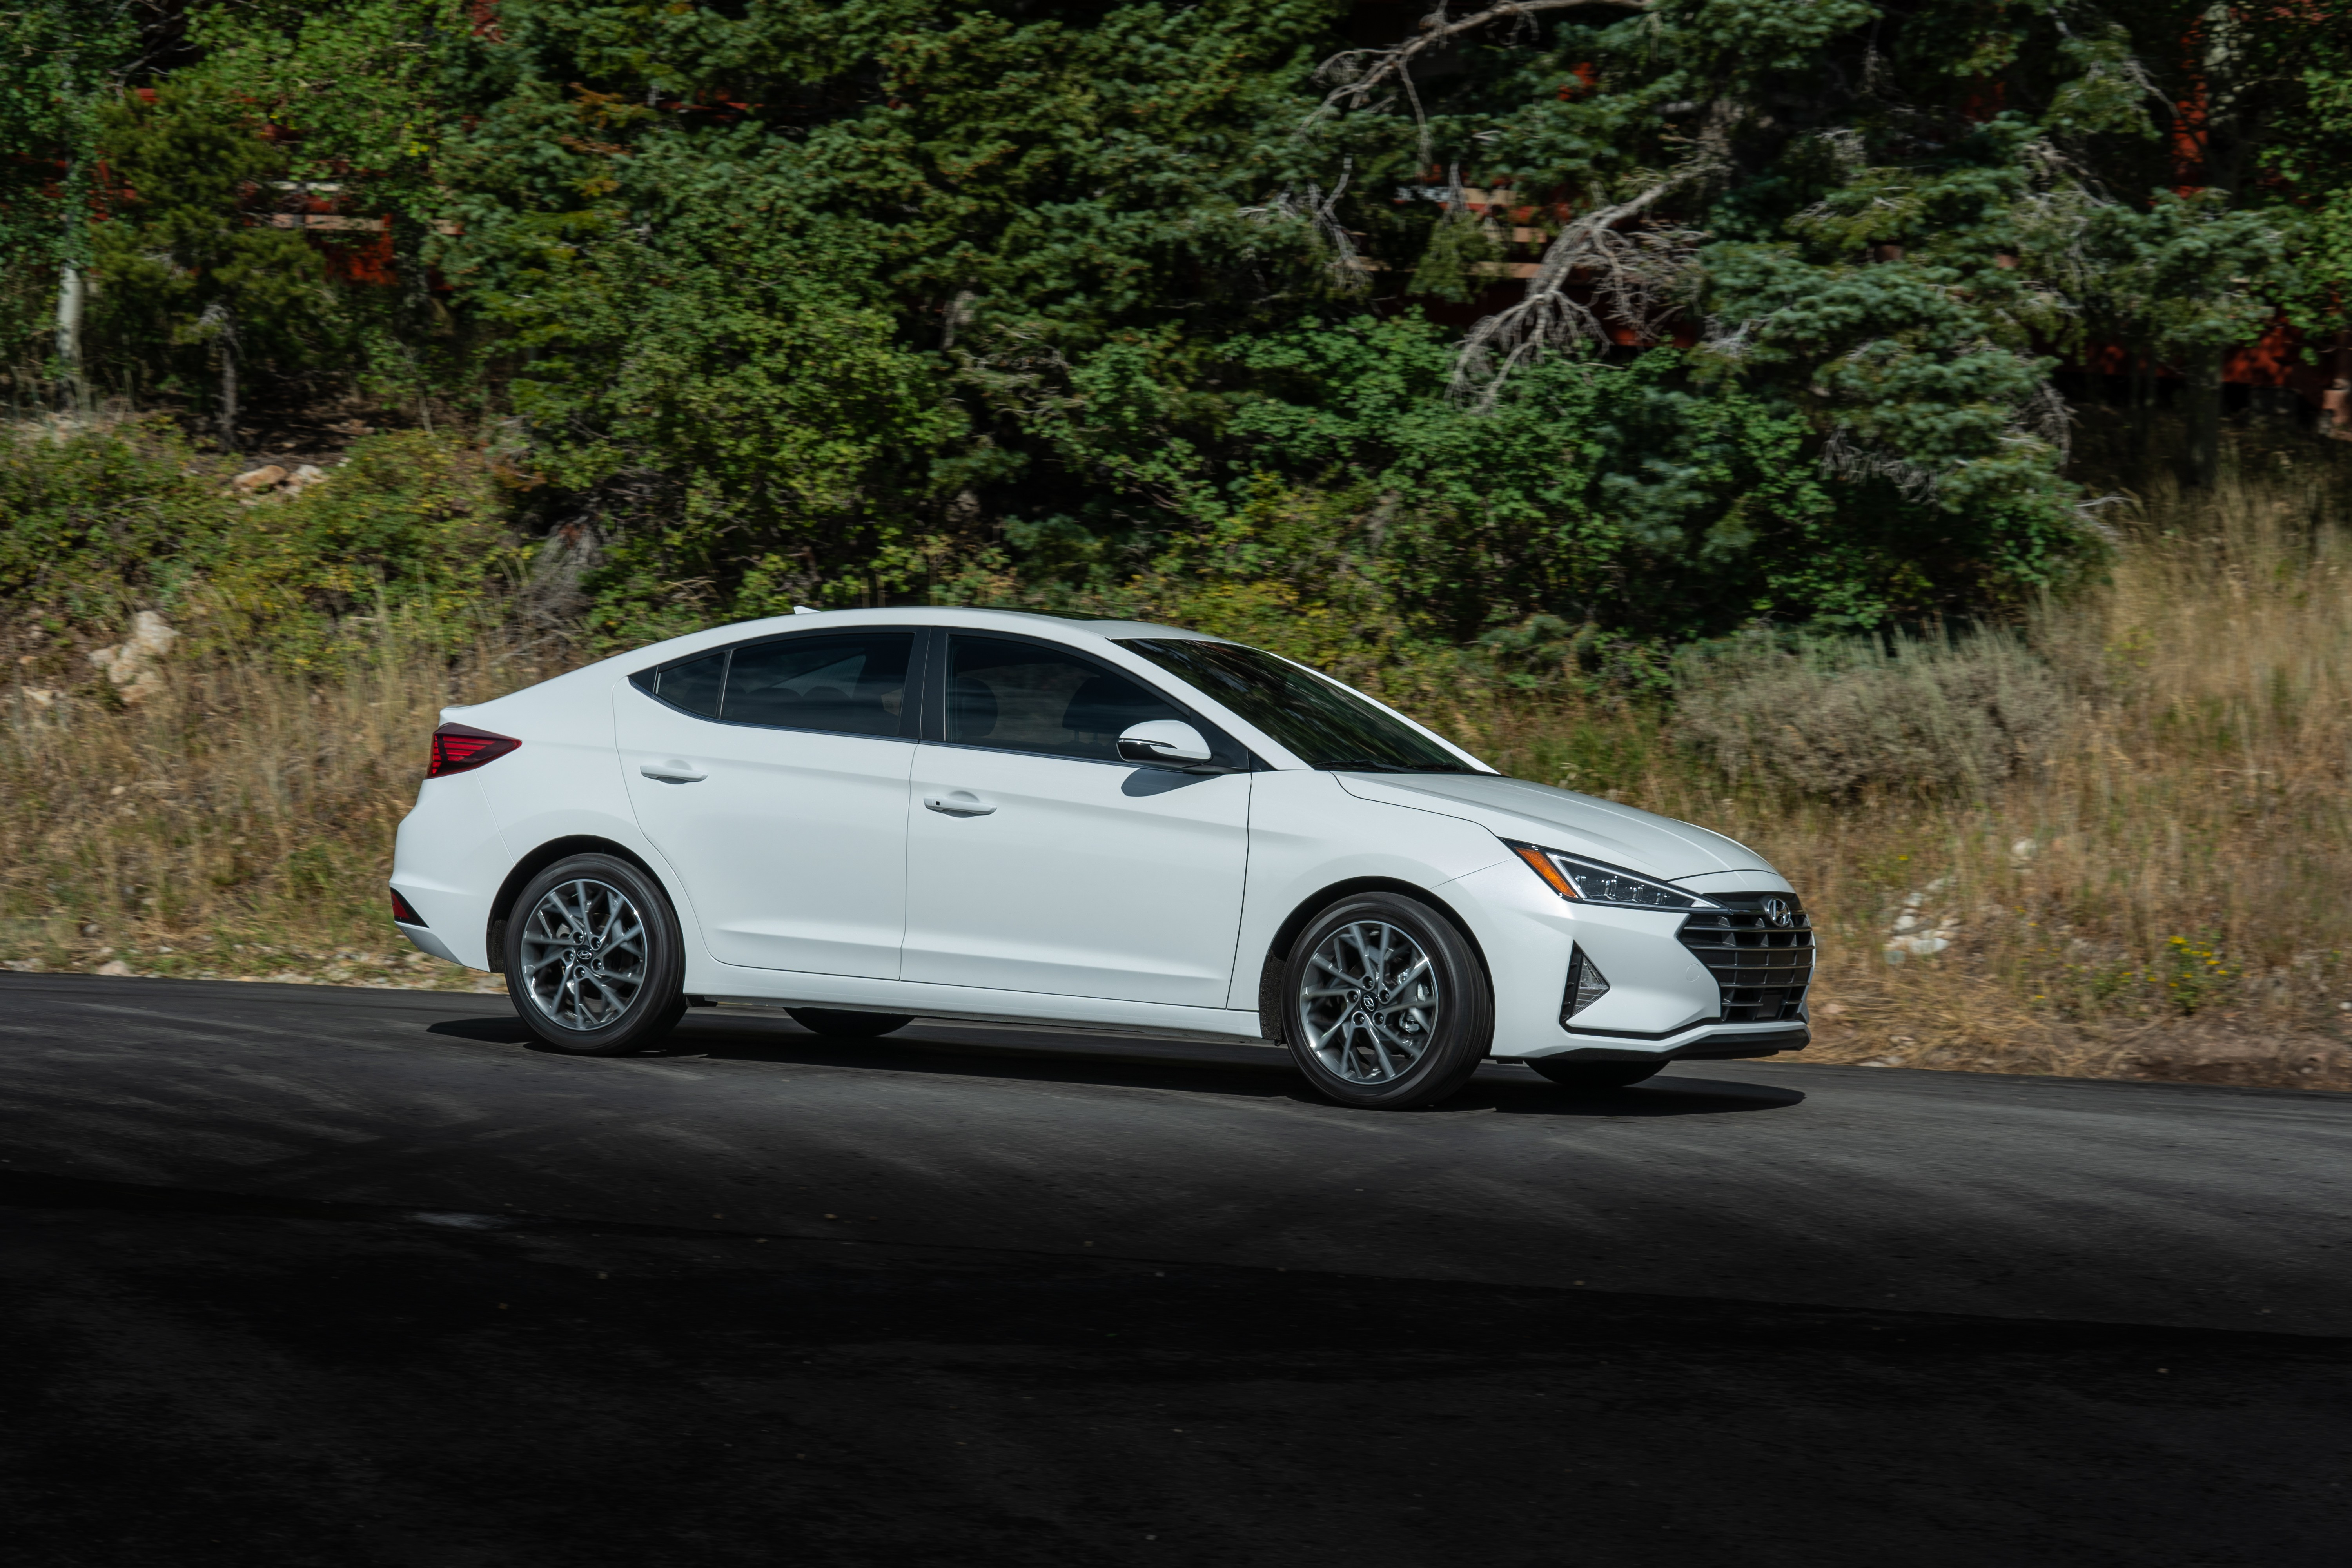 2019 Hyundai Elantra Preview - Motor Illustrated